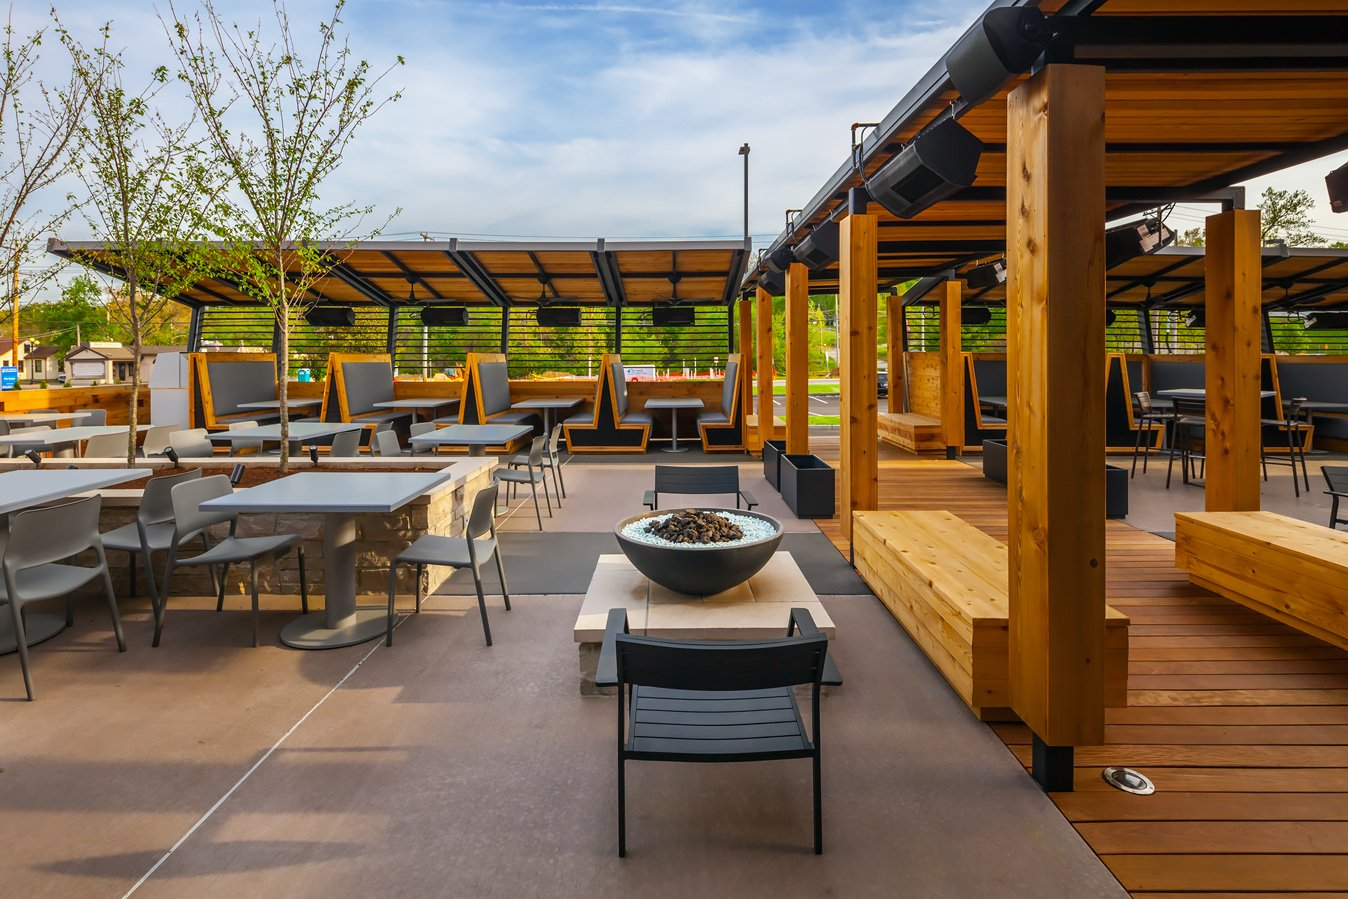 How the Design of a Restaurant Patio Affects the Overall Customer Experience